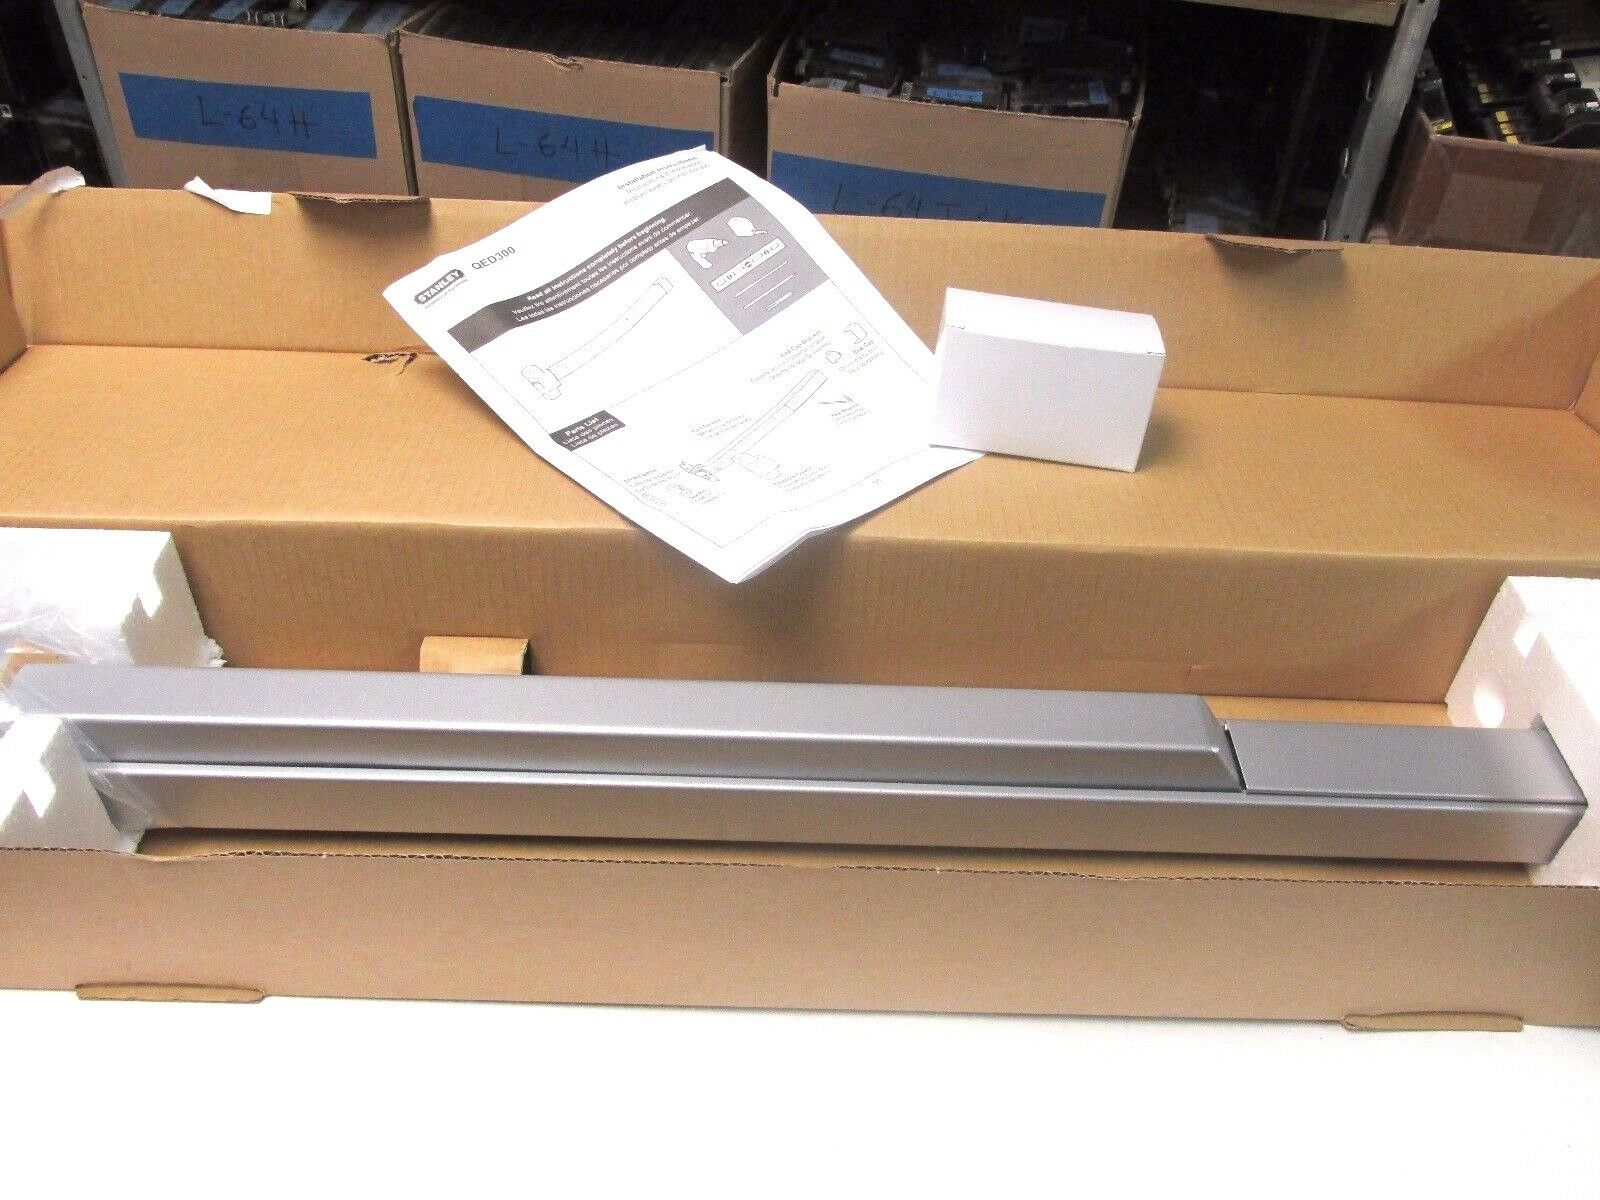 NIB Stanley Security Hardware Exit Device Model QED300 CatQED31336689.. UP-600